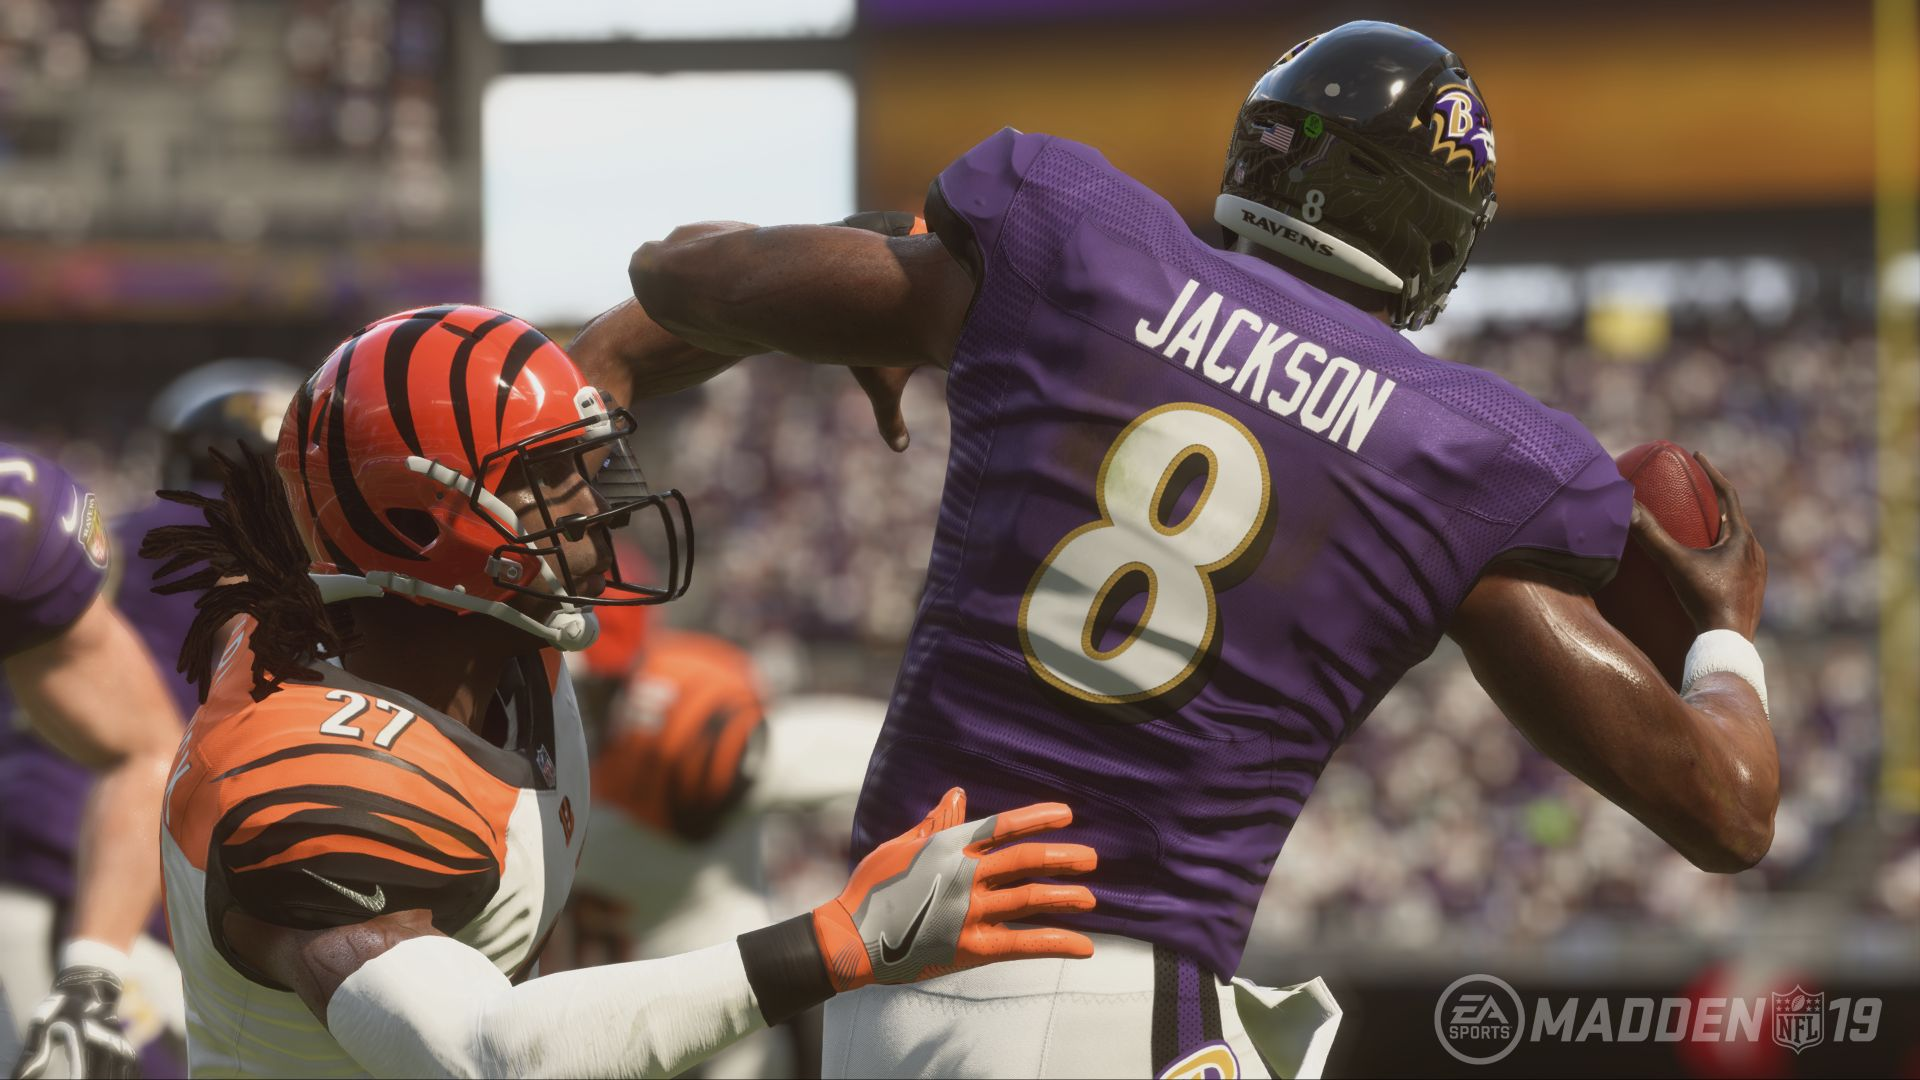 Madden returns to the PC just as Im breaking up with the NFL  VentureBeat